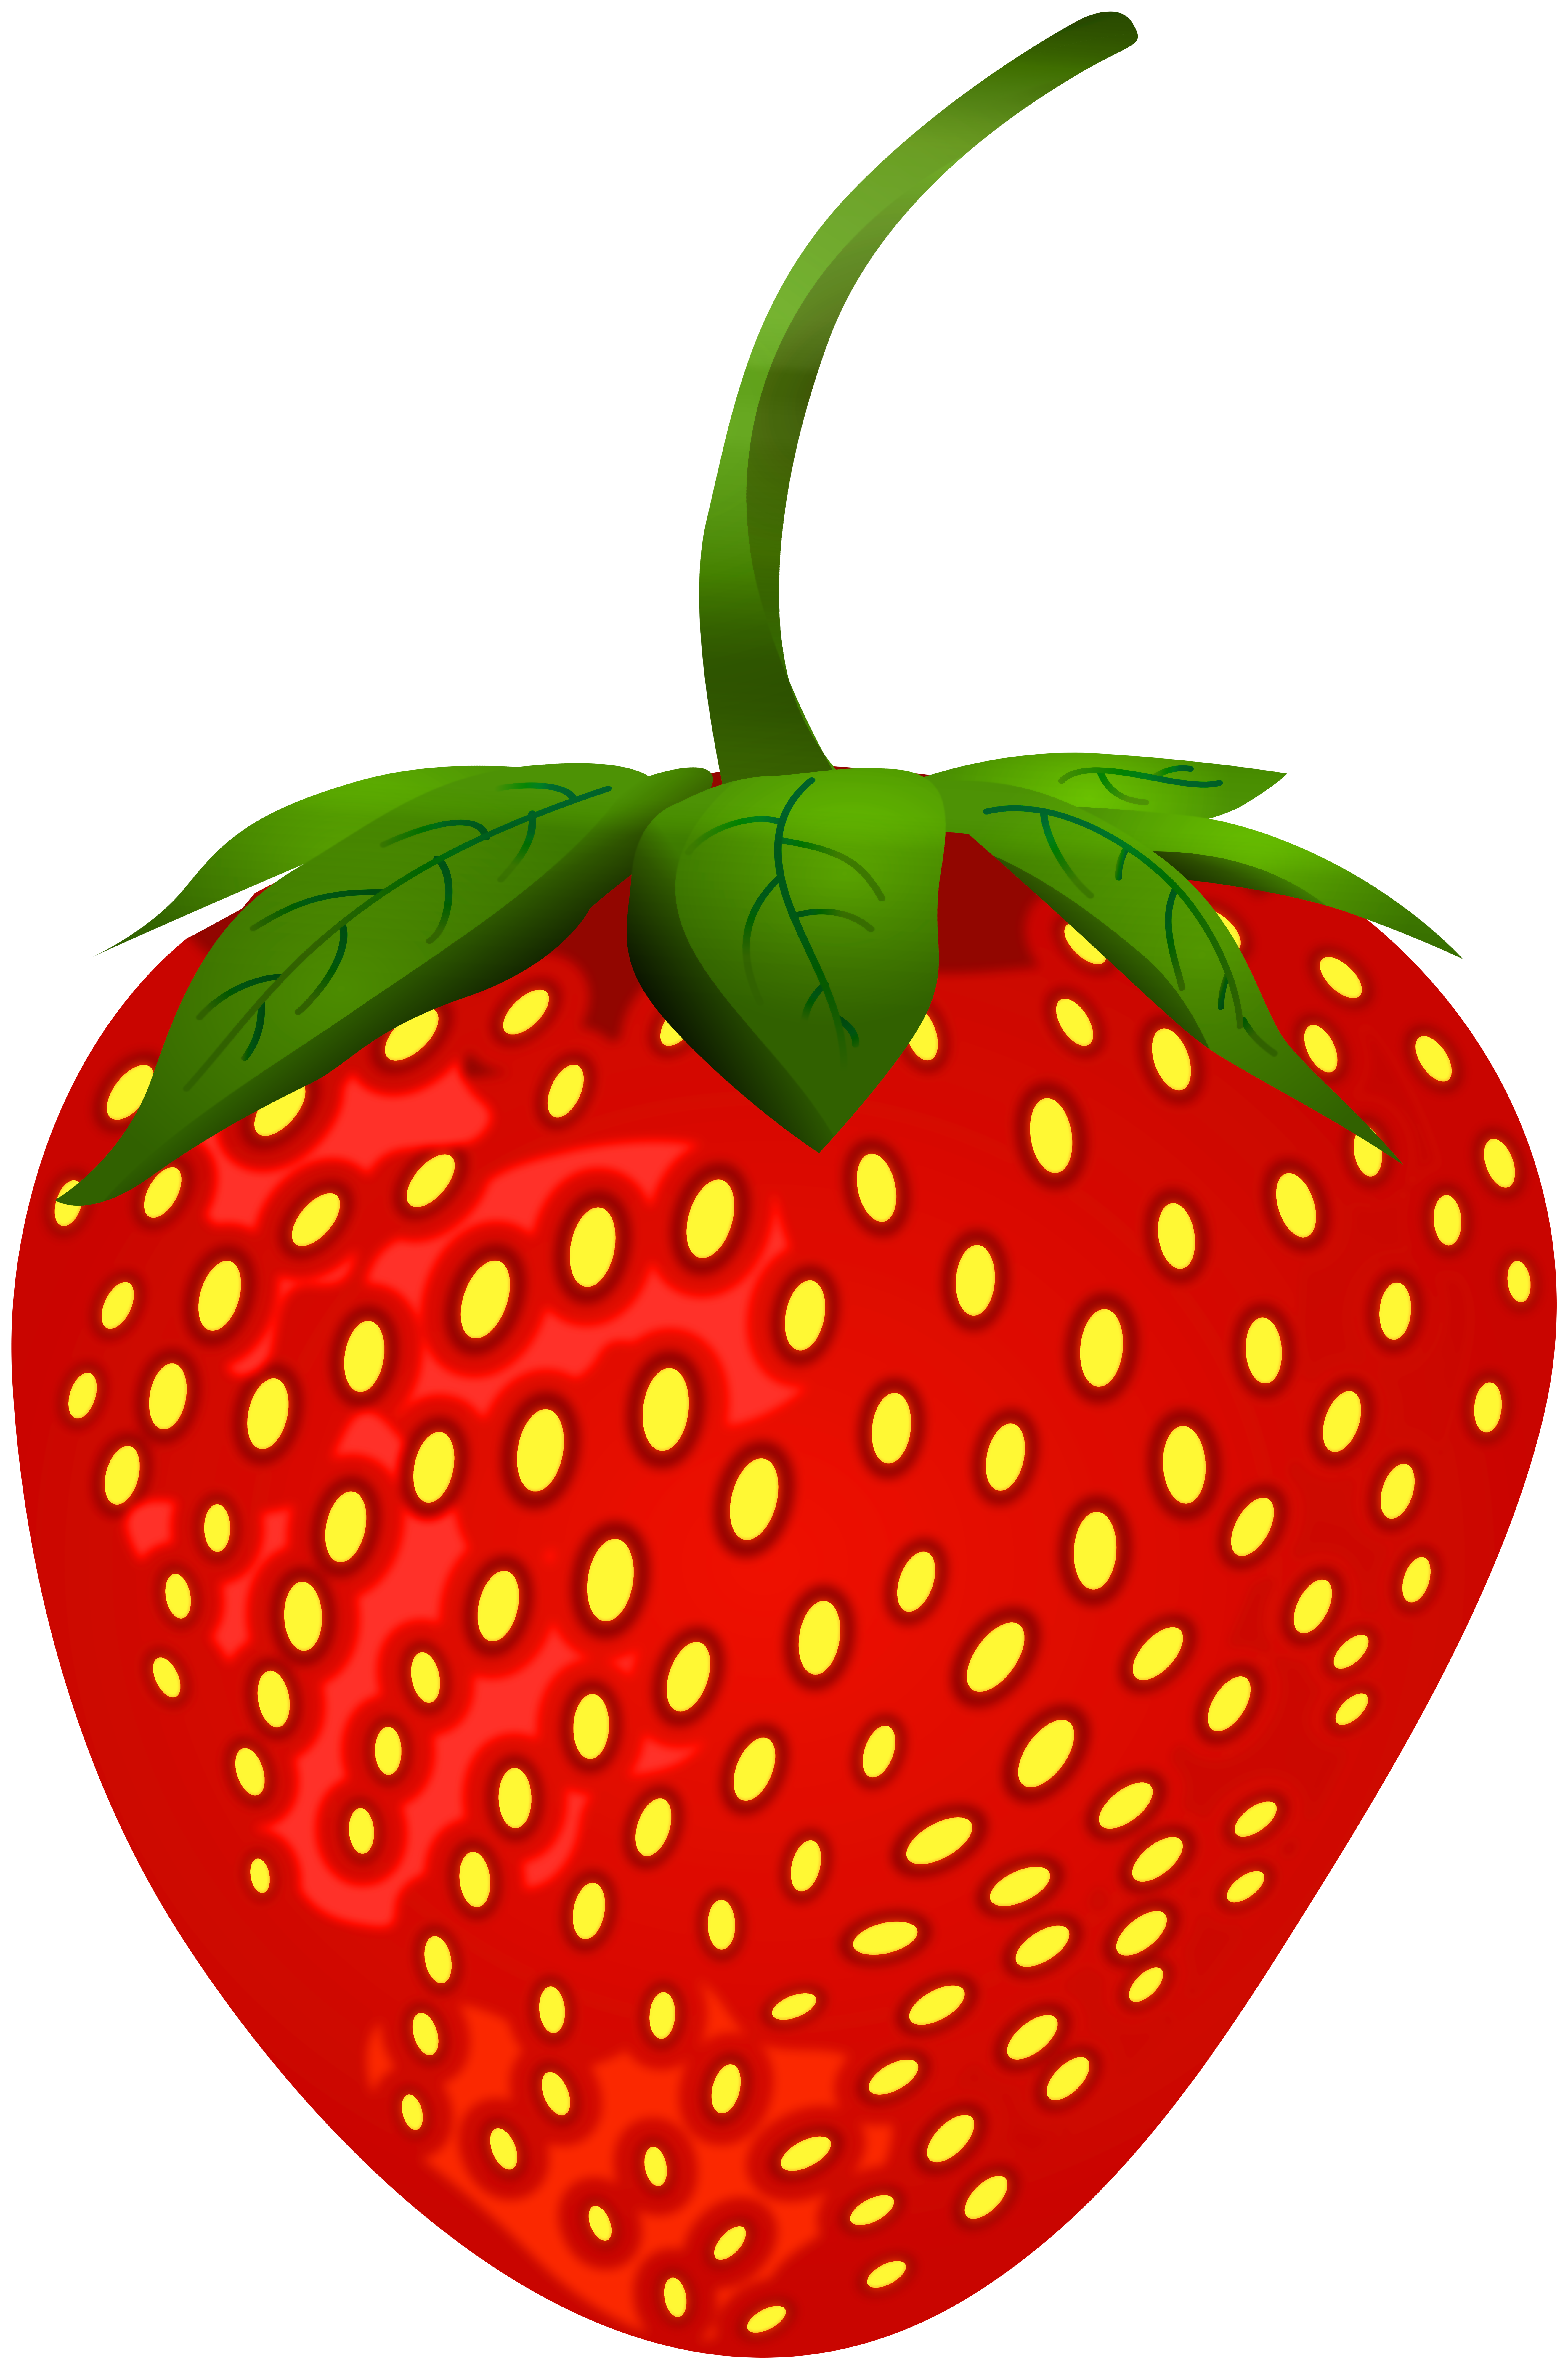 graphic free library Strawberry clipart. Png clip art best